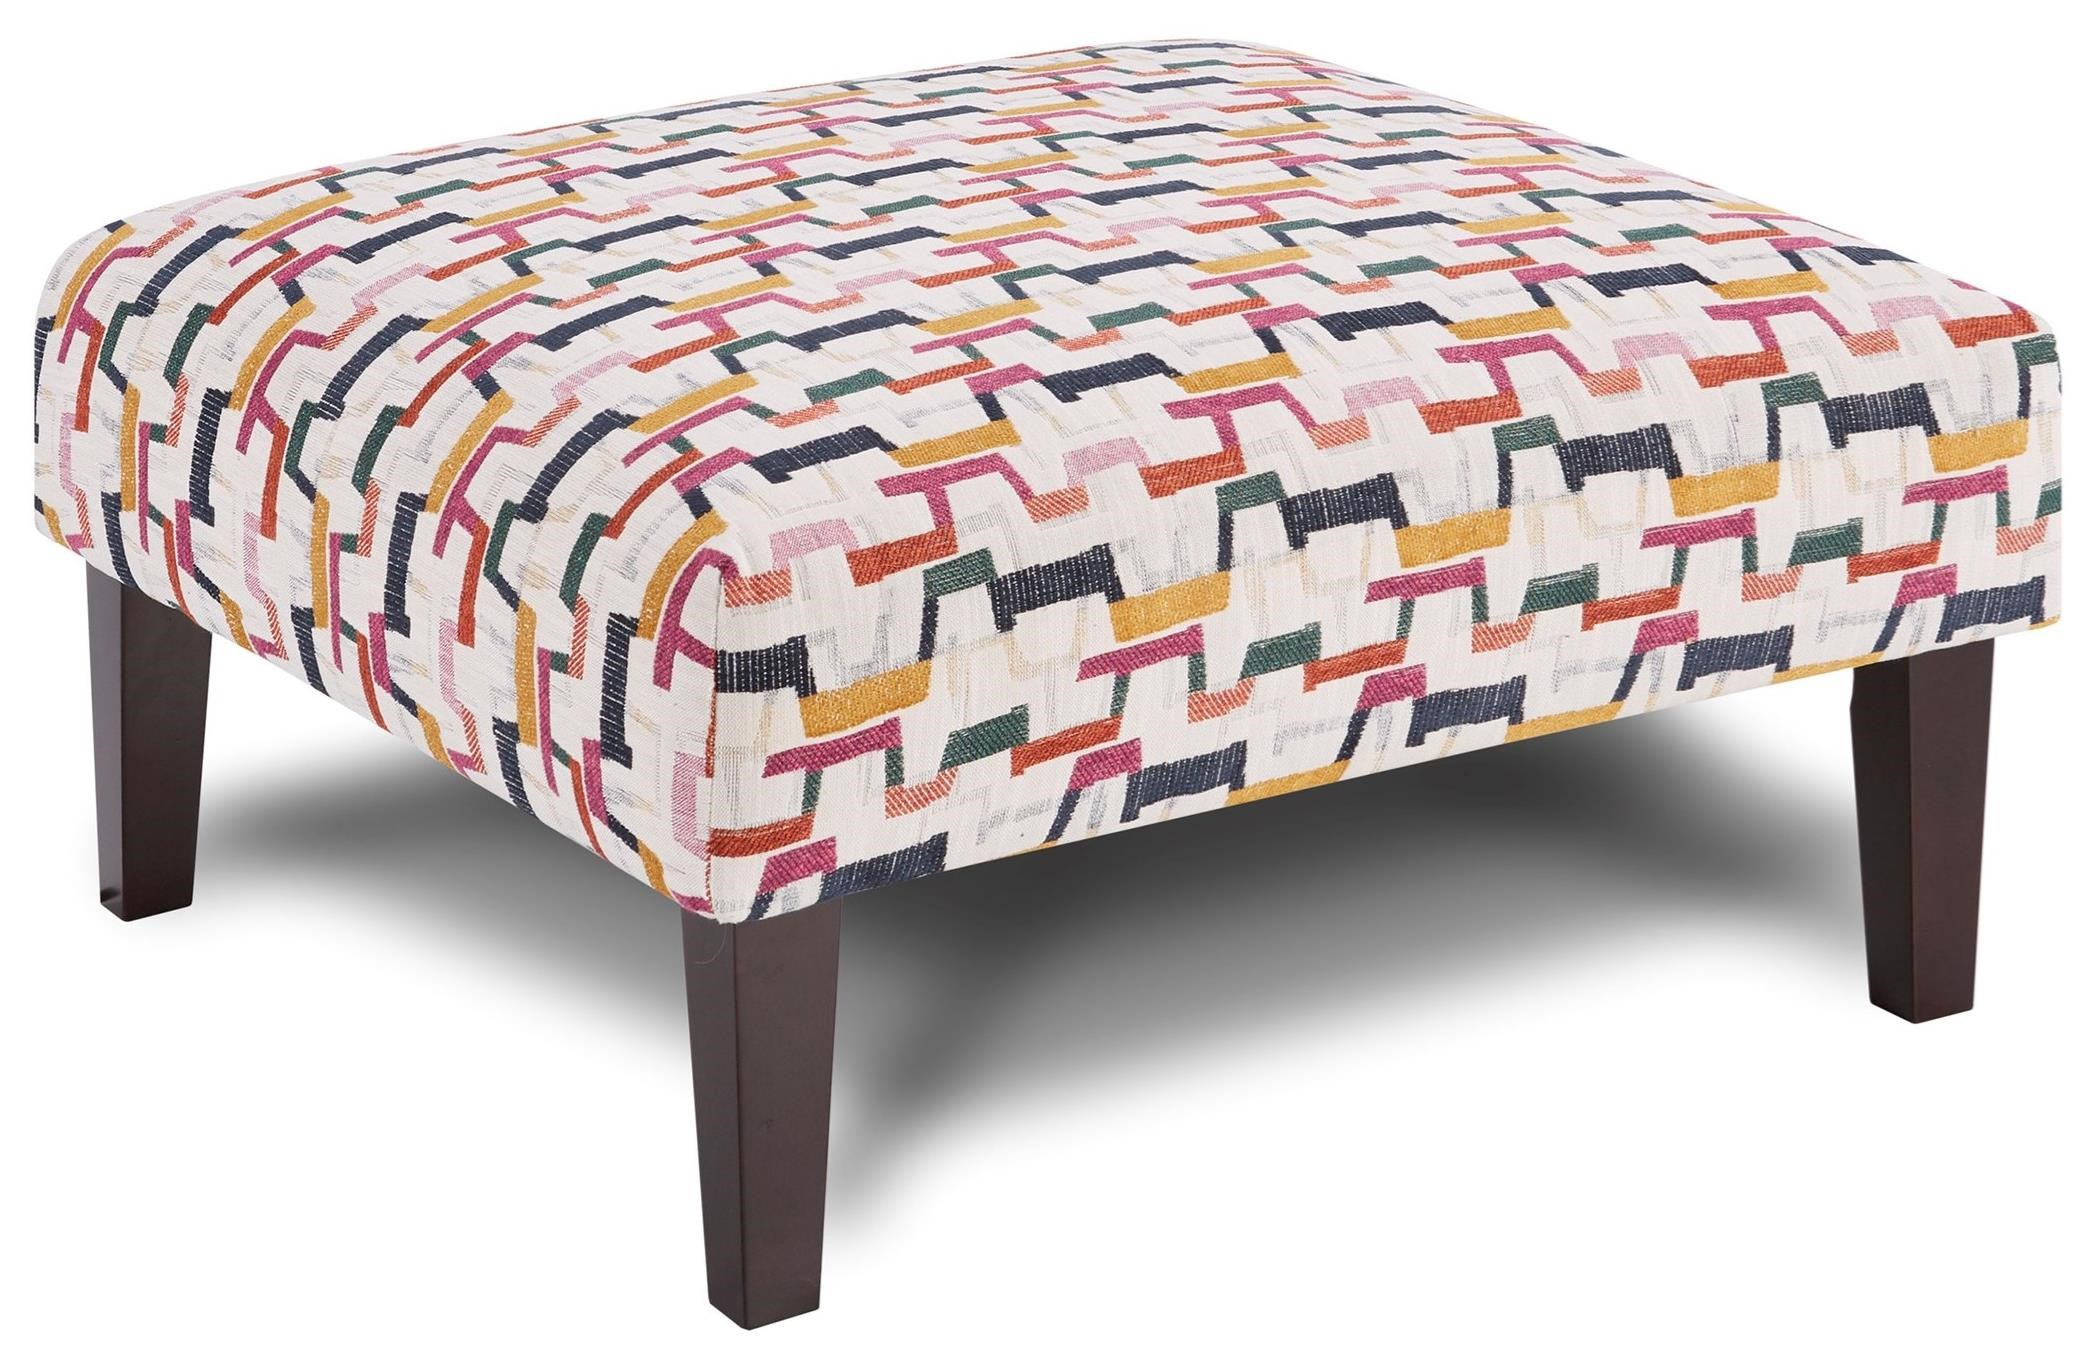 159 Cocktail Ottoman by Fusion Furniture at Furniture Superstore - Rochester, MN